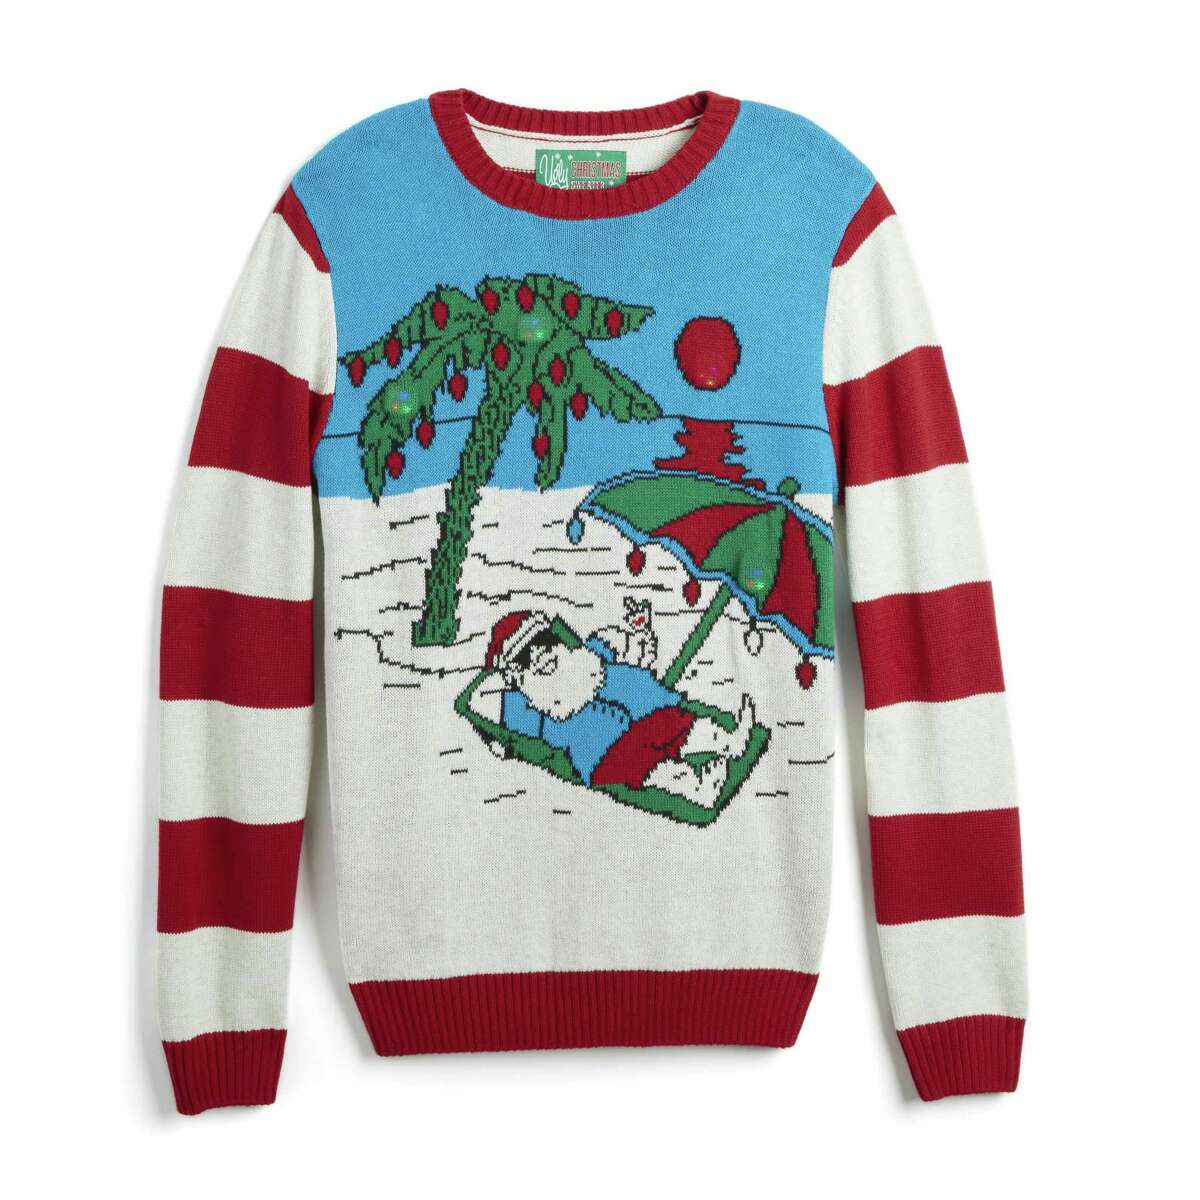 Not all Christmas sweaters are ugly, and many have become more ironic or quirky. Among the retailers featuring them this season is Kohl's.